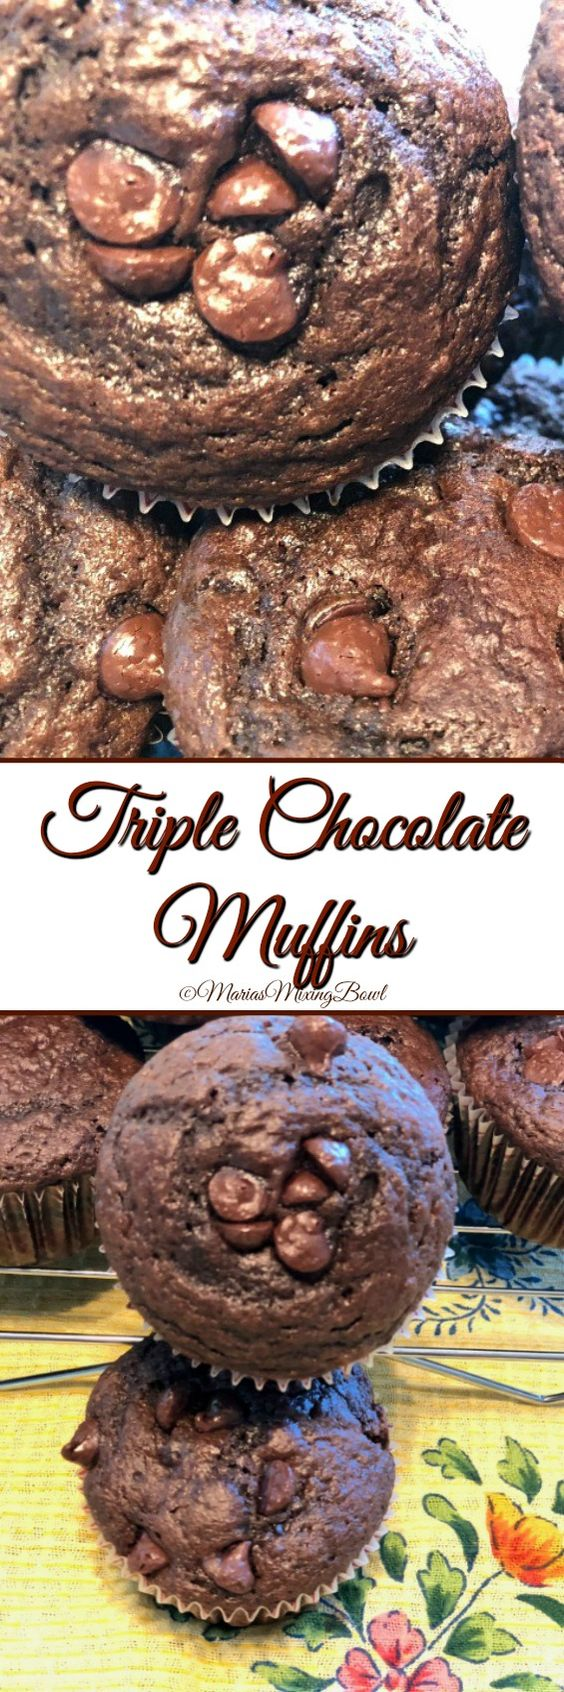 Triple Chocolate Muffins - We are calling these muffins because they aren't frosted. Some would call them cupcakes. Honestly they don't need frosting because they are very rich on their own. And the texture is much different than a cupcake too.